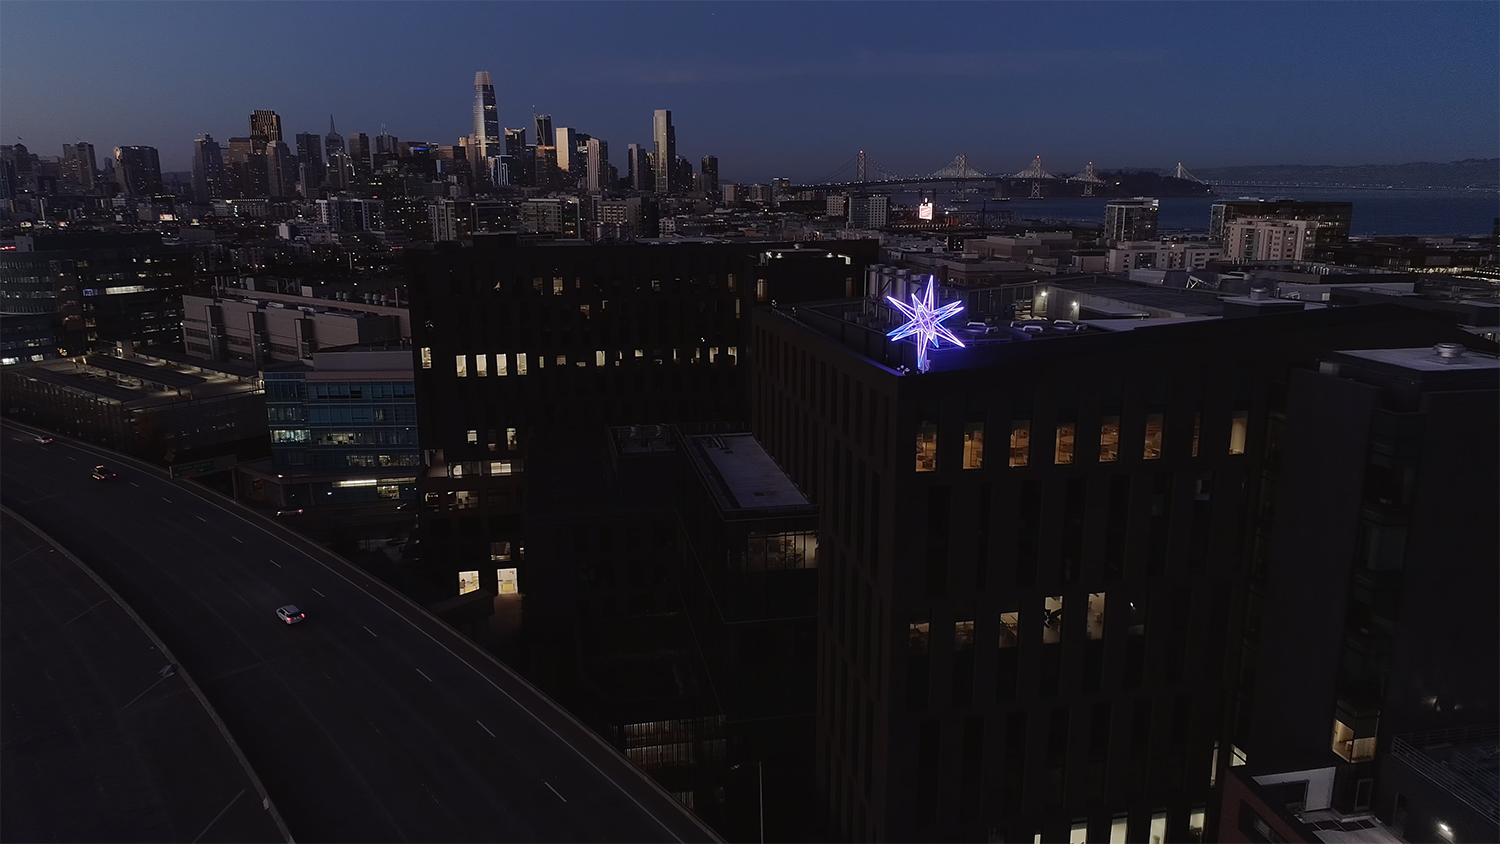 "Seattle's skyline has a new addition as of Tuesday night (12/8) - a 20-foot in diameter star installation beaming with 30,000 LED bulbs, located on top of the Kilroy Realty building at 333 Dexter Avenue N. The real estate development company placed four of these ""Kilroy Stars"" on high points in Seattle, San Francisco, San Diego and Los Angeles to unite the west coast, foster ""the sublime power of art within our communities"" and represent hope for 2021. The stars will shine in various rhythms, colors and patterns of light within 24-hour cycles. The installations will be up through the end of January.{&nbsp;}<a  href=""https://www.thekilroystars.com/"" target=""_blank"" title=""https://www.thekilroystars.com/"">More info online.</a>{&nbsp;}(Image: Zoetic)"